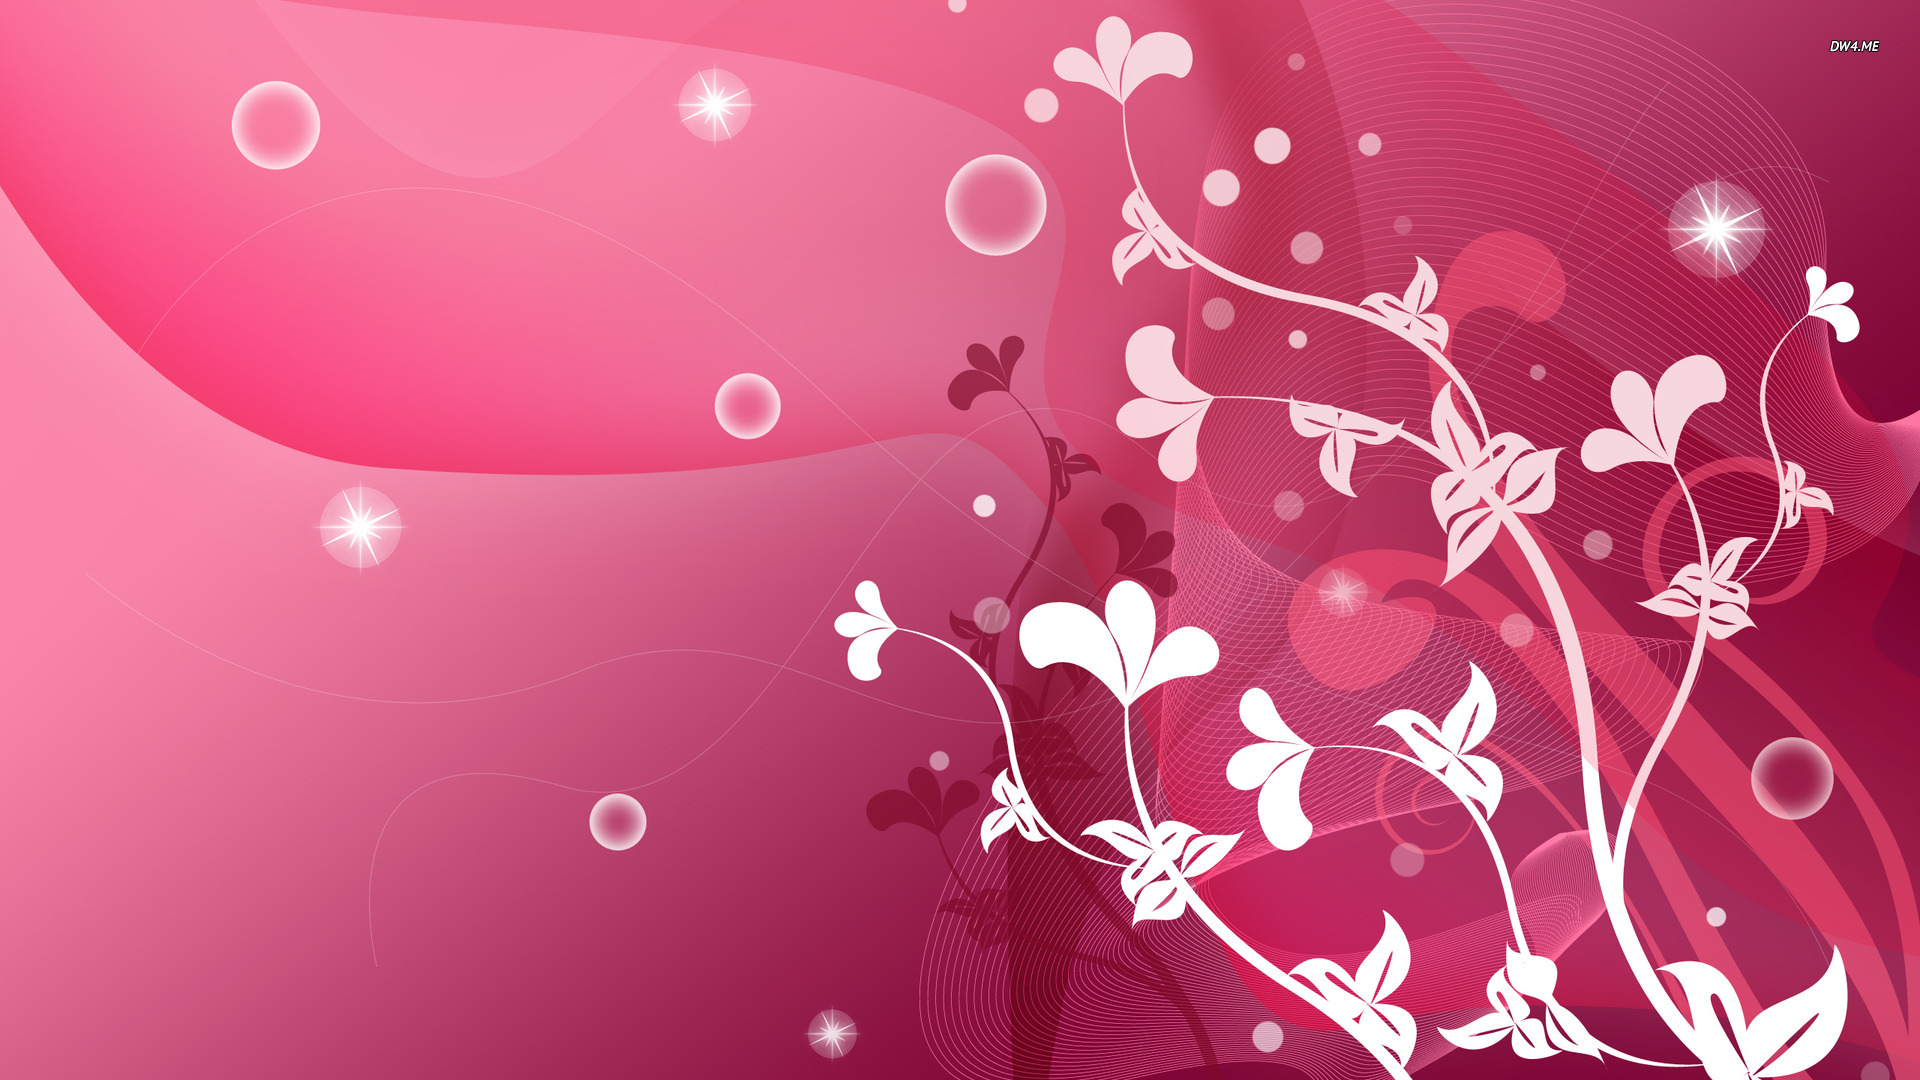 35 High Definition Pink Wallpapers/Backgrounds For Free ...